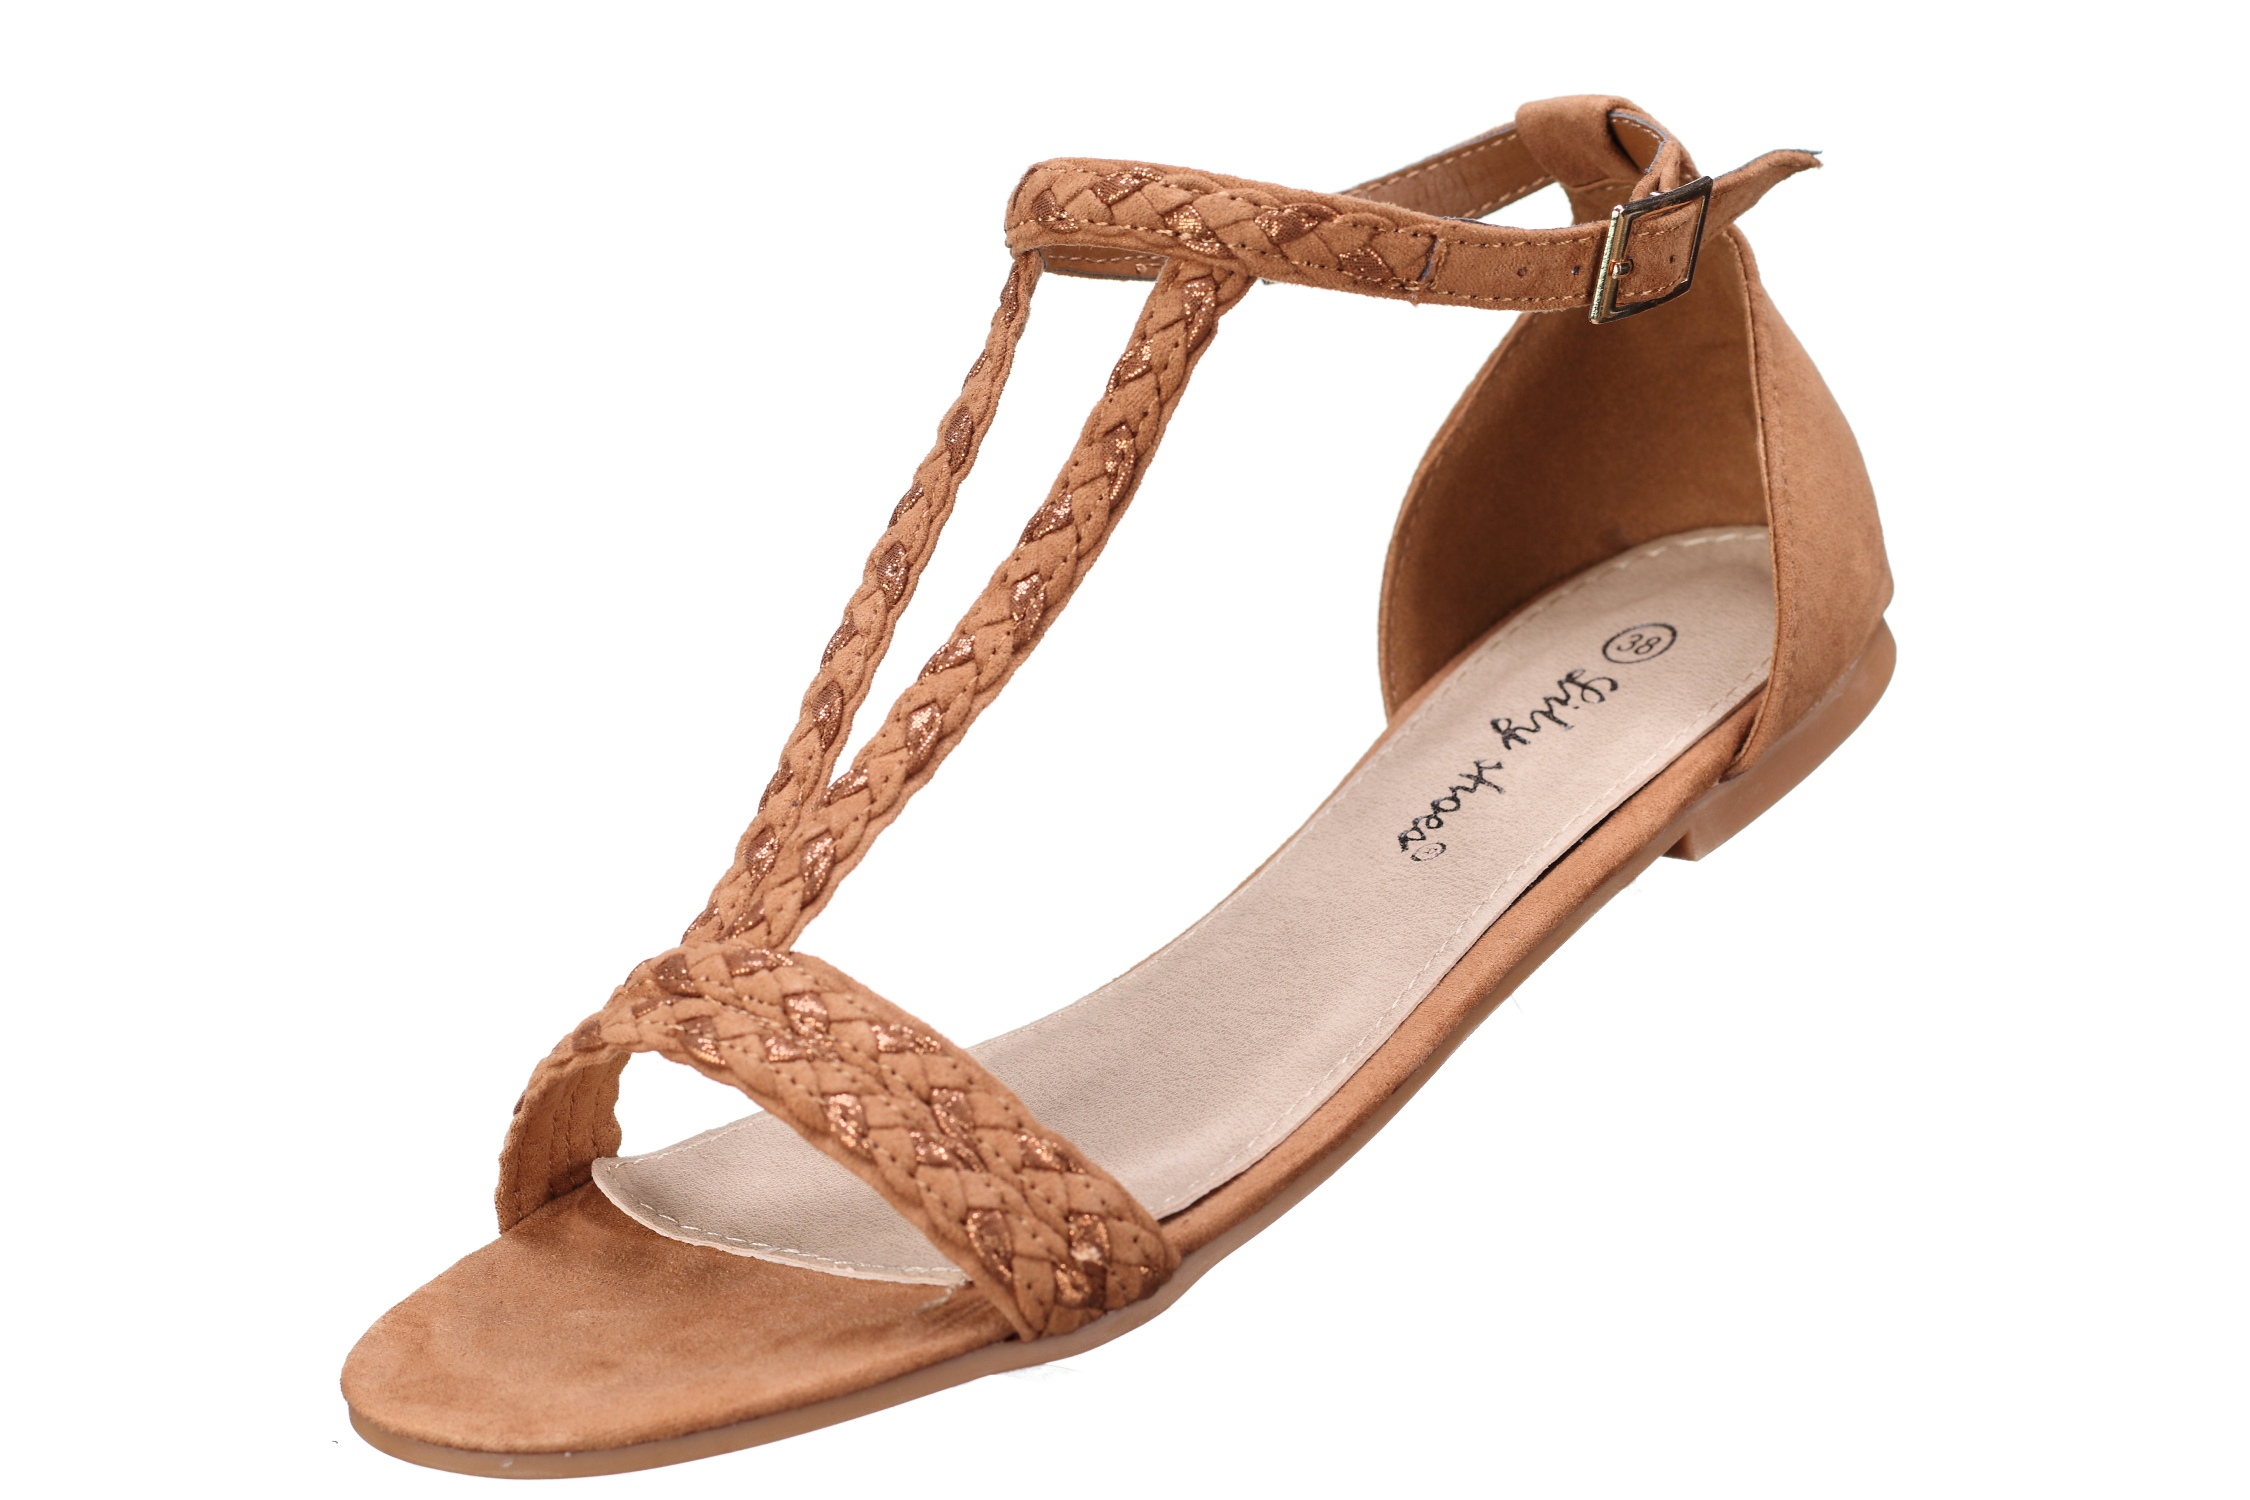 http://www.leadermode.com/124700/lily-shoes-l325-camel.jpg